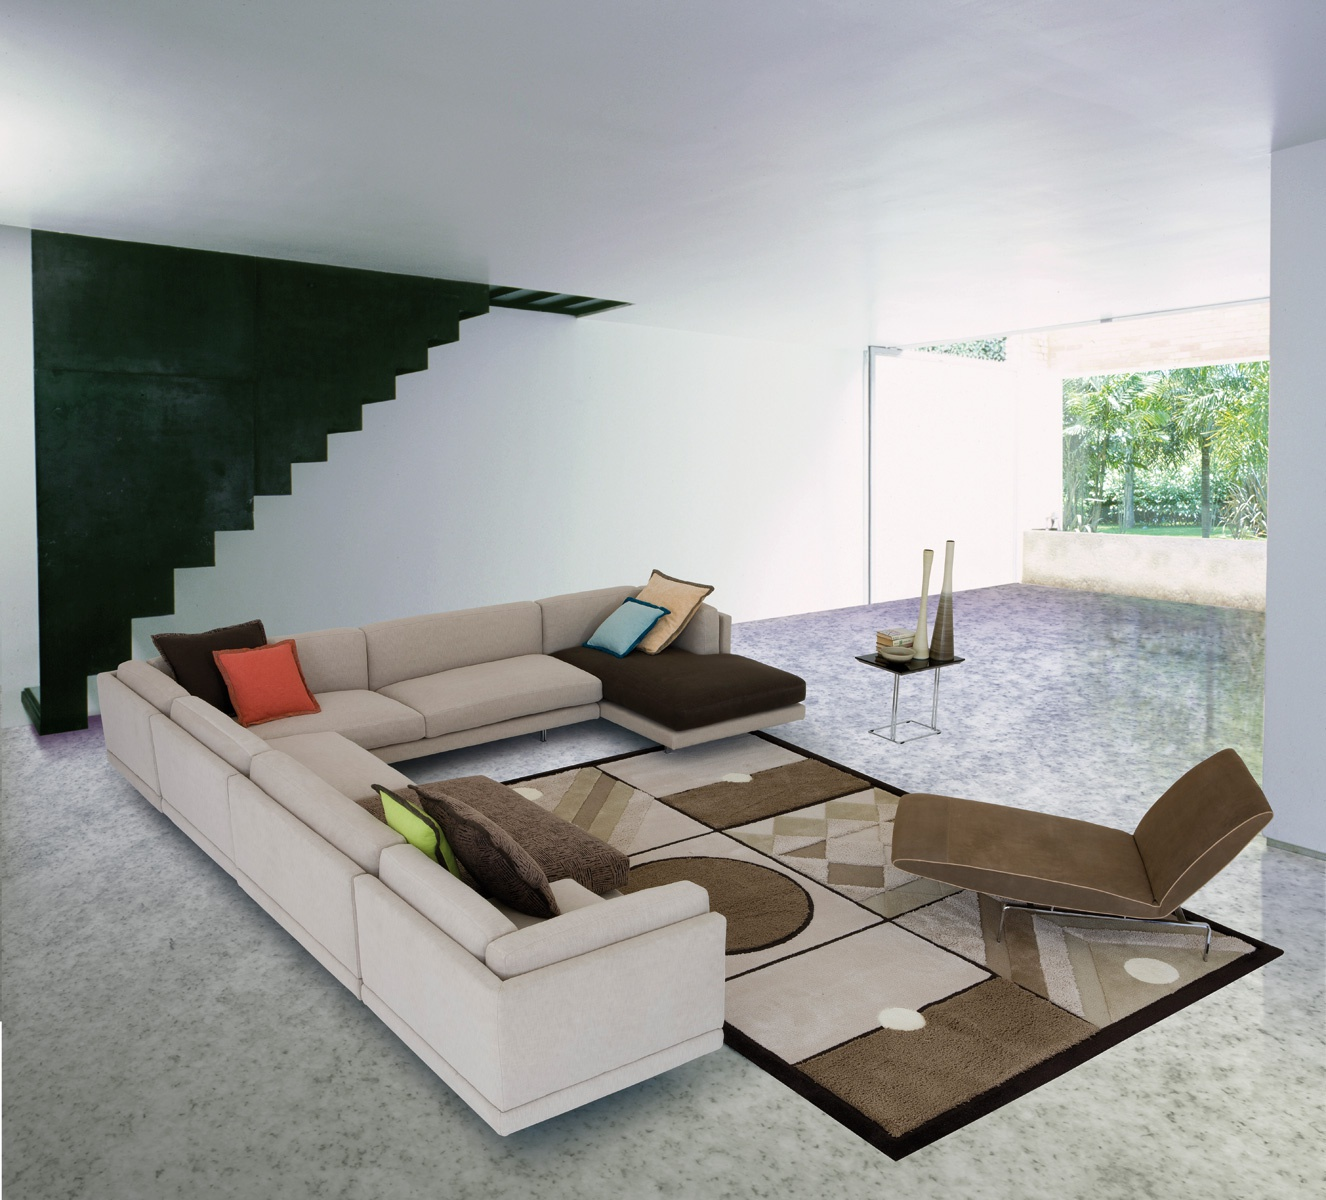 Modular Sofa With Metal Legs Galaxy, Il Loft